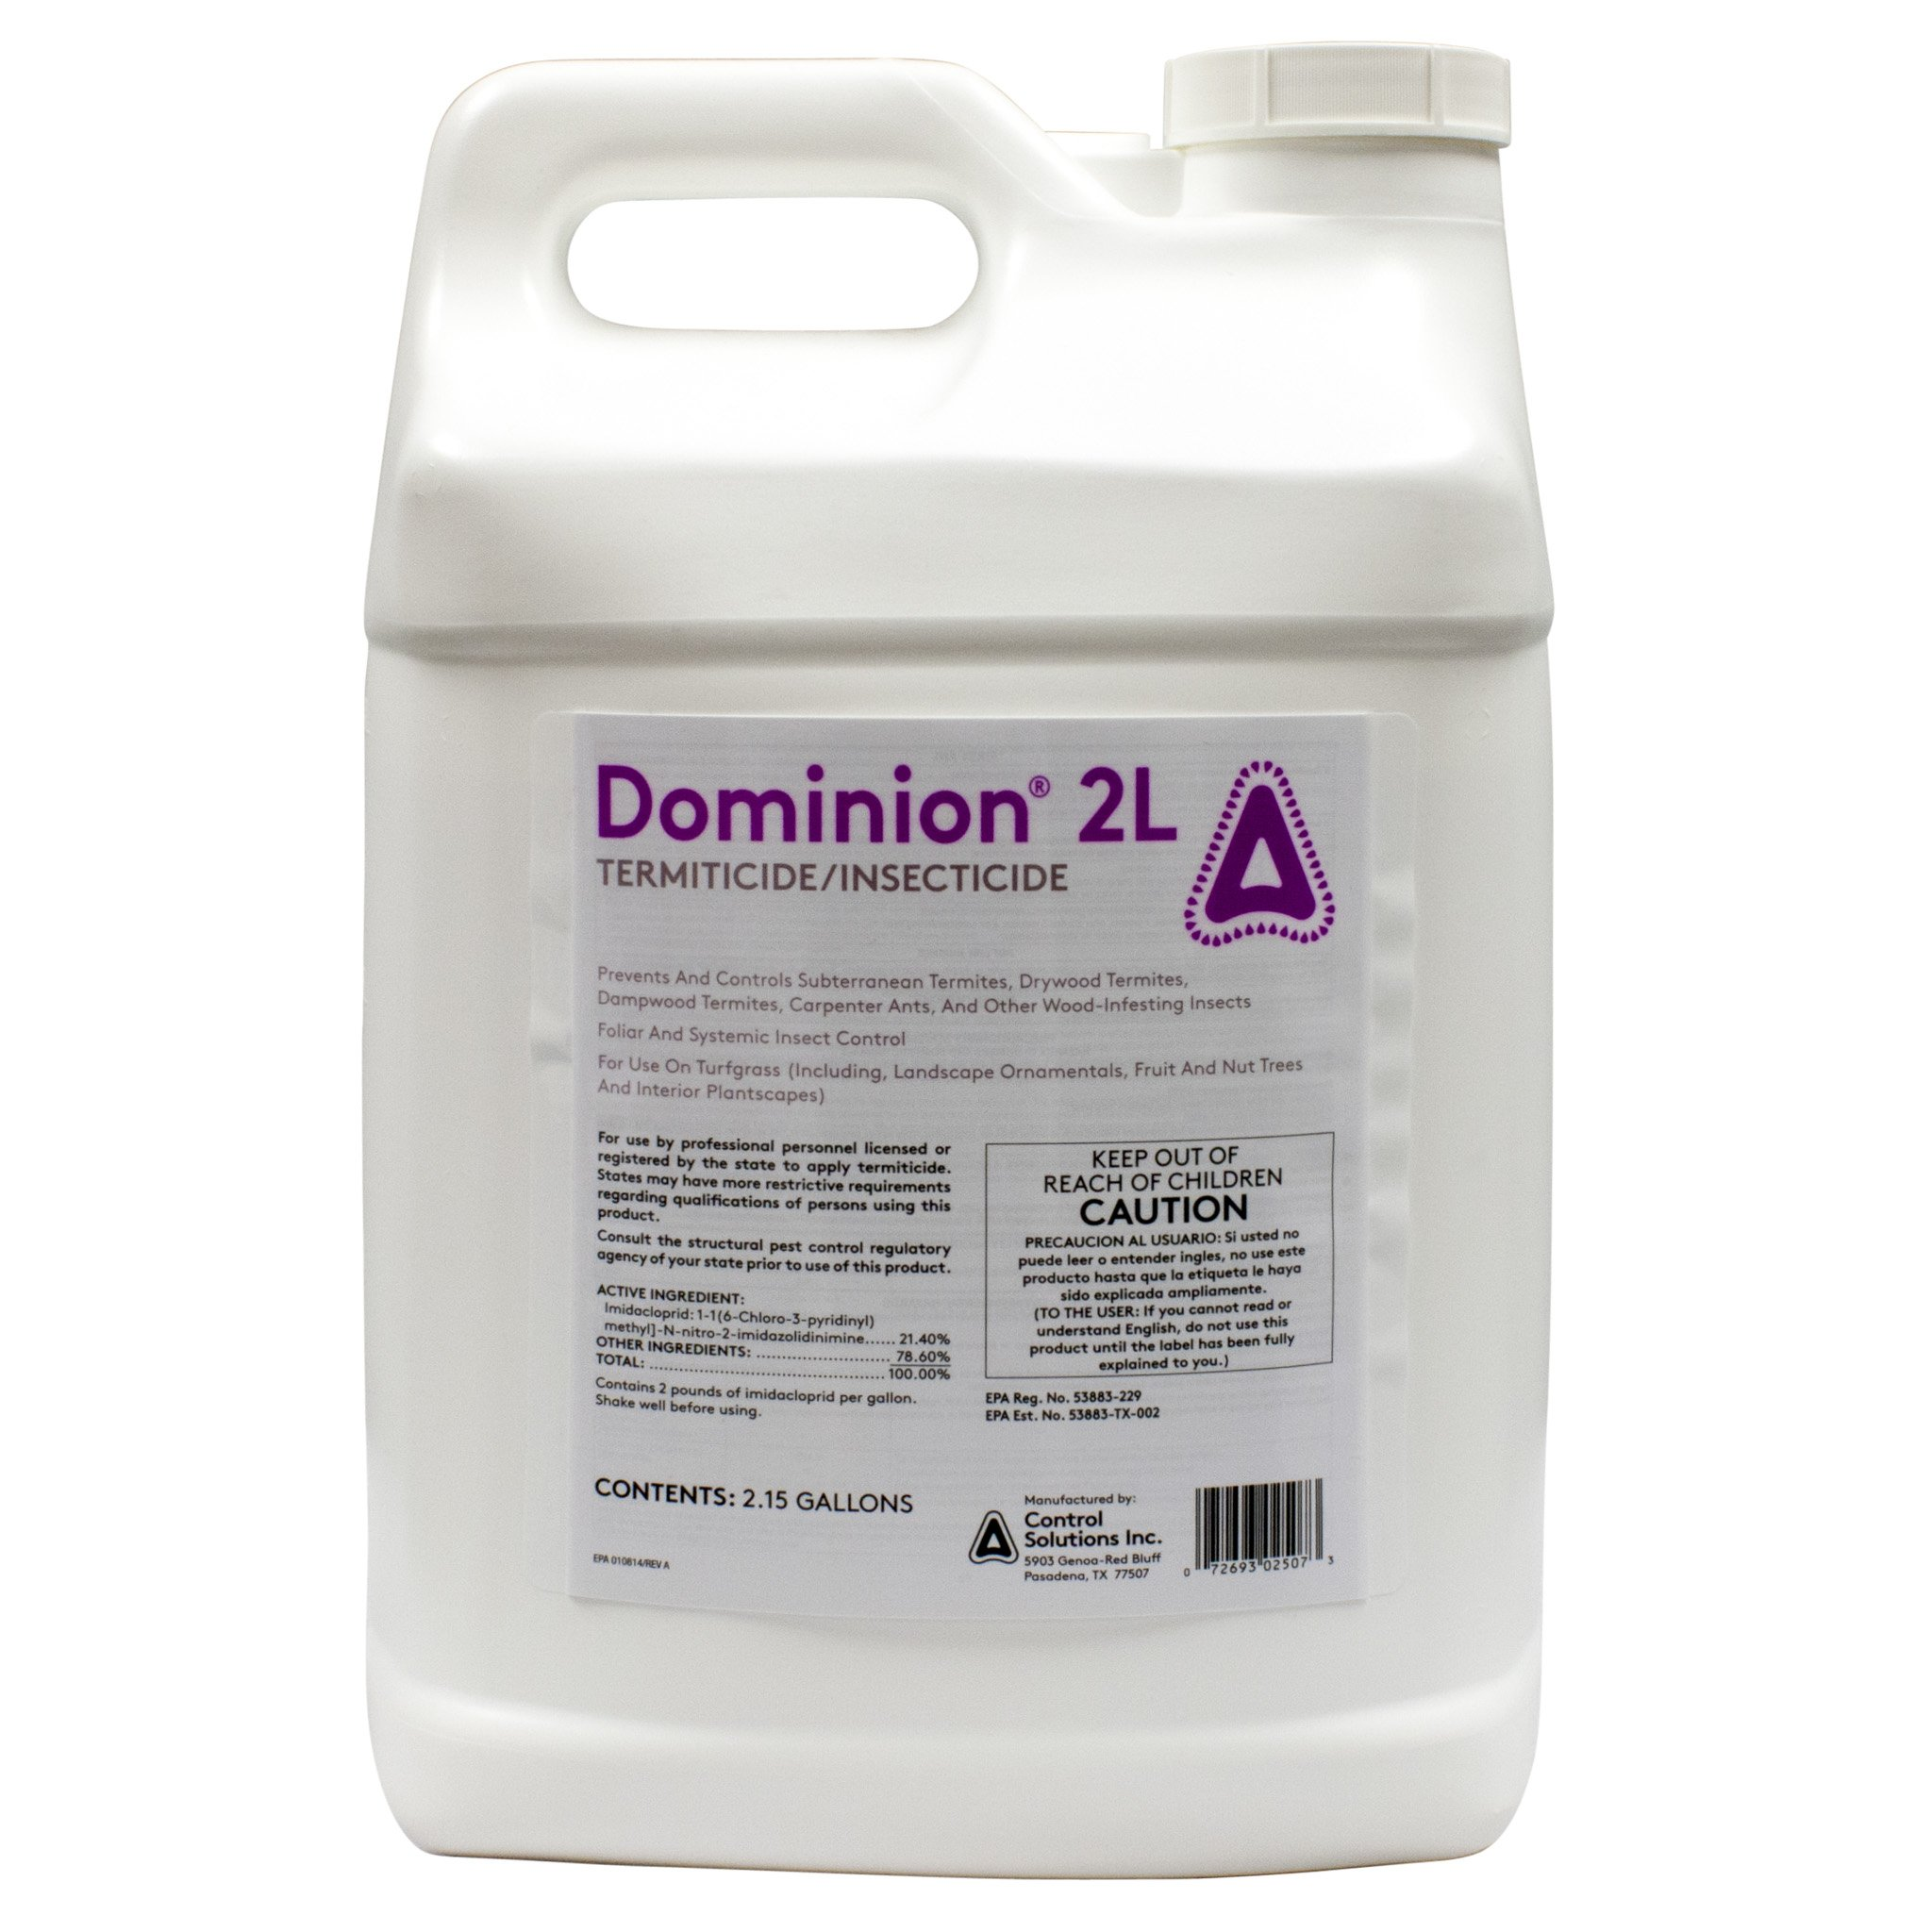 Dominion 2L 21.4% Imidacloprid 2.15 Gallon by Control Solutions